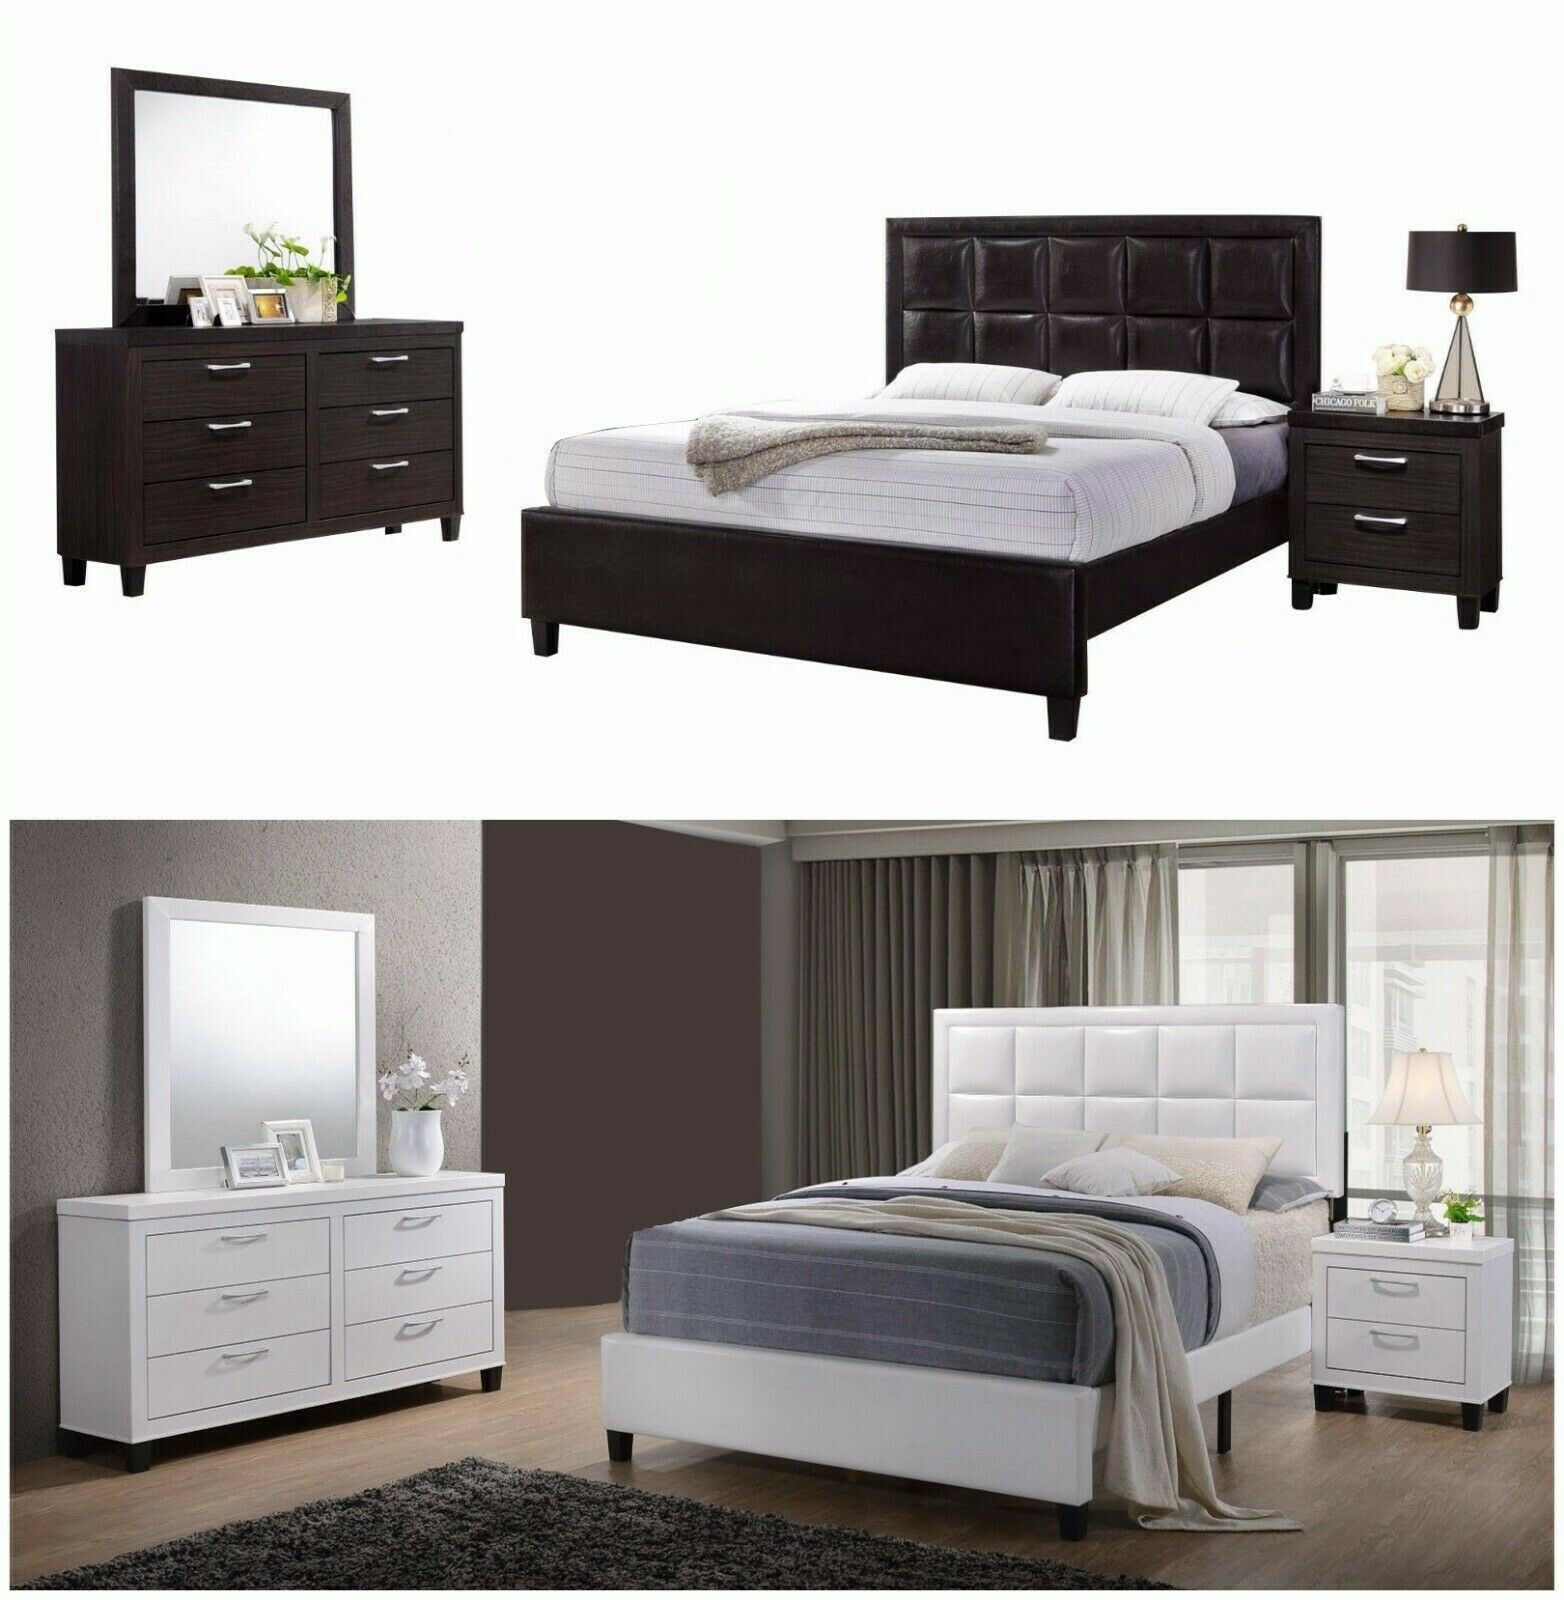 NEW 4Pc Wood with Faux Leather Bedroom Set, Queen  Bed+Nightstand+Mirror+Dresser